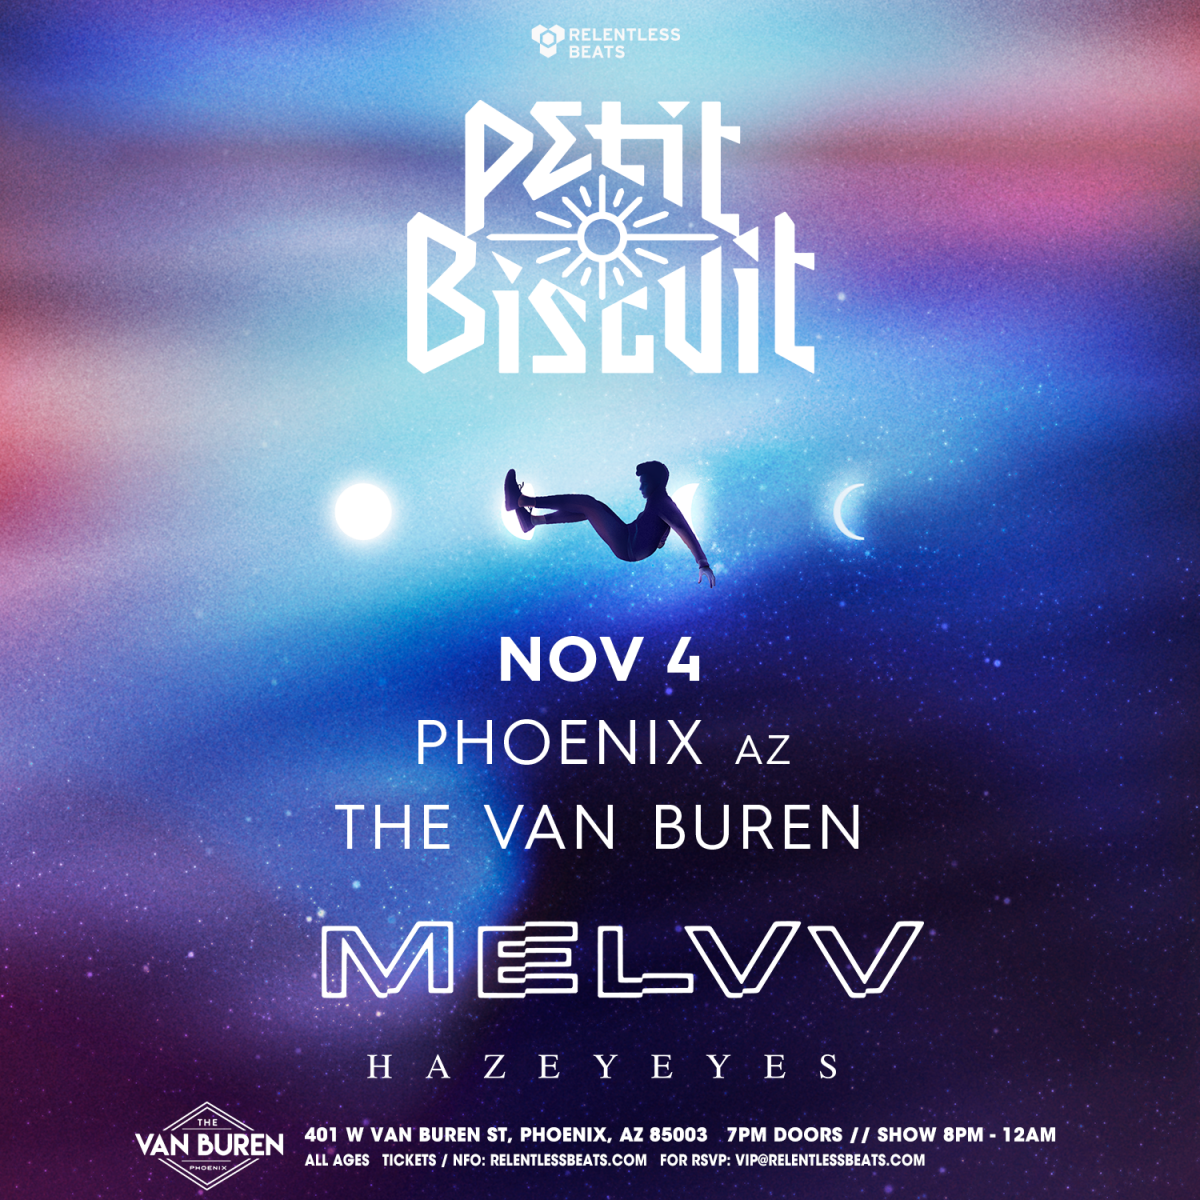 Flyer for Petit Biscuit